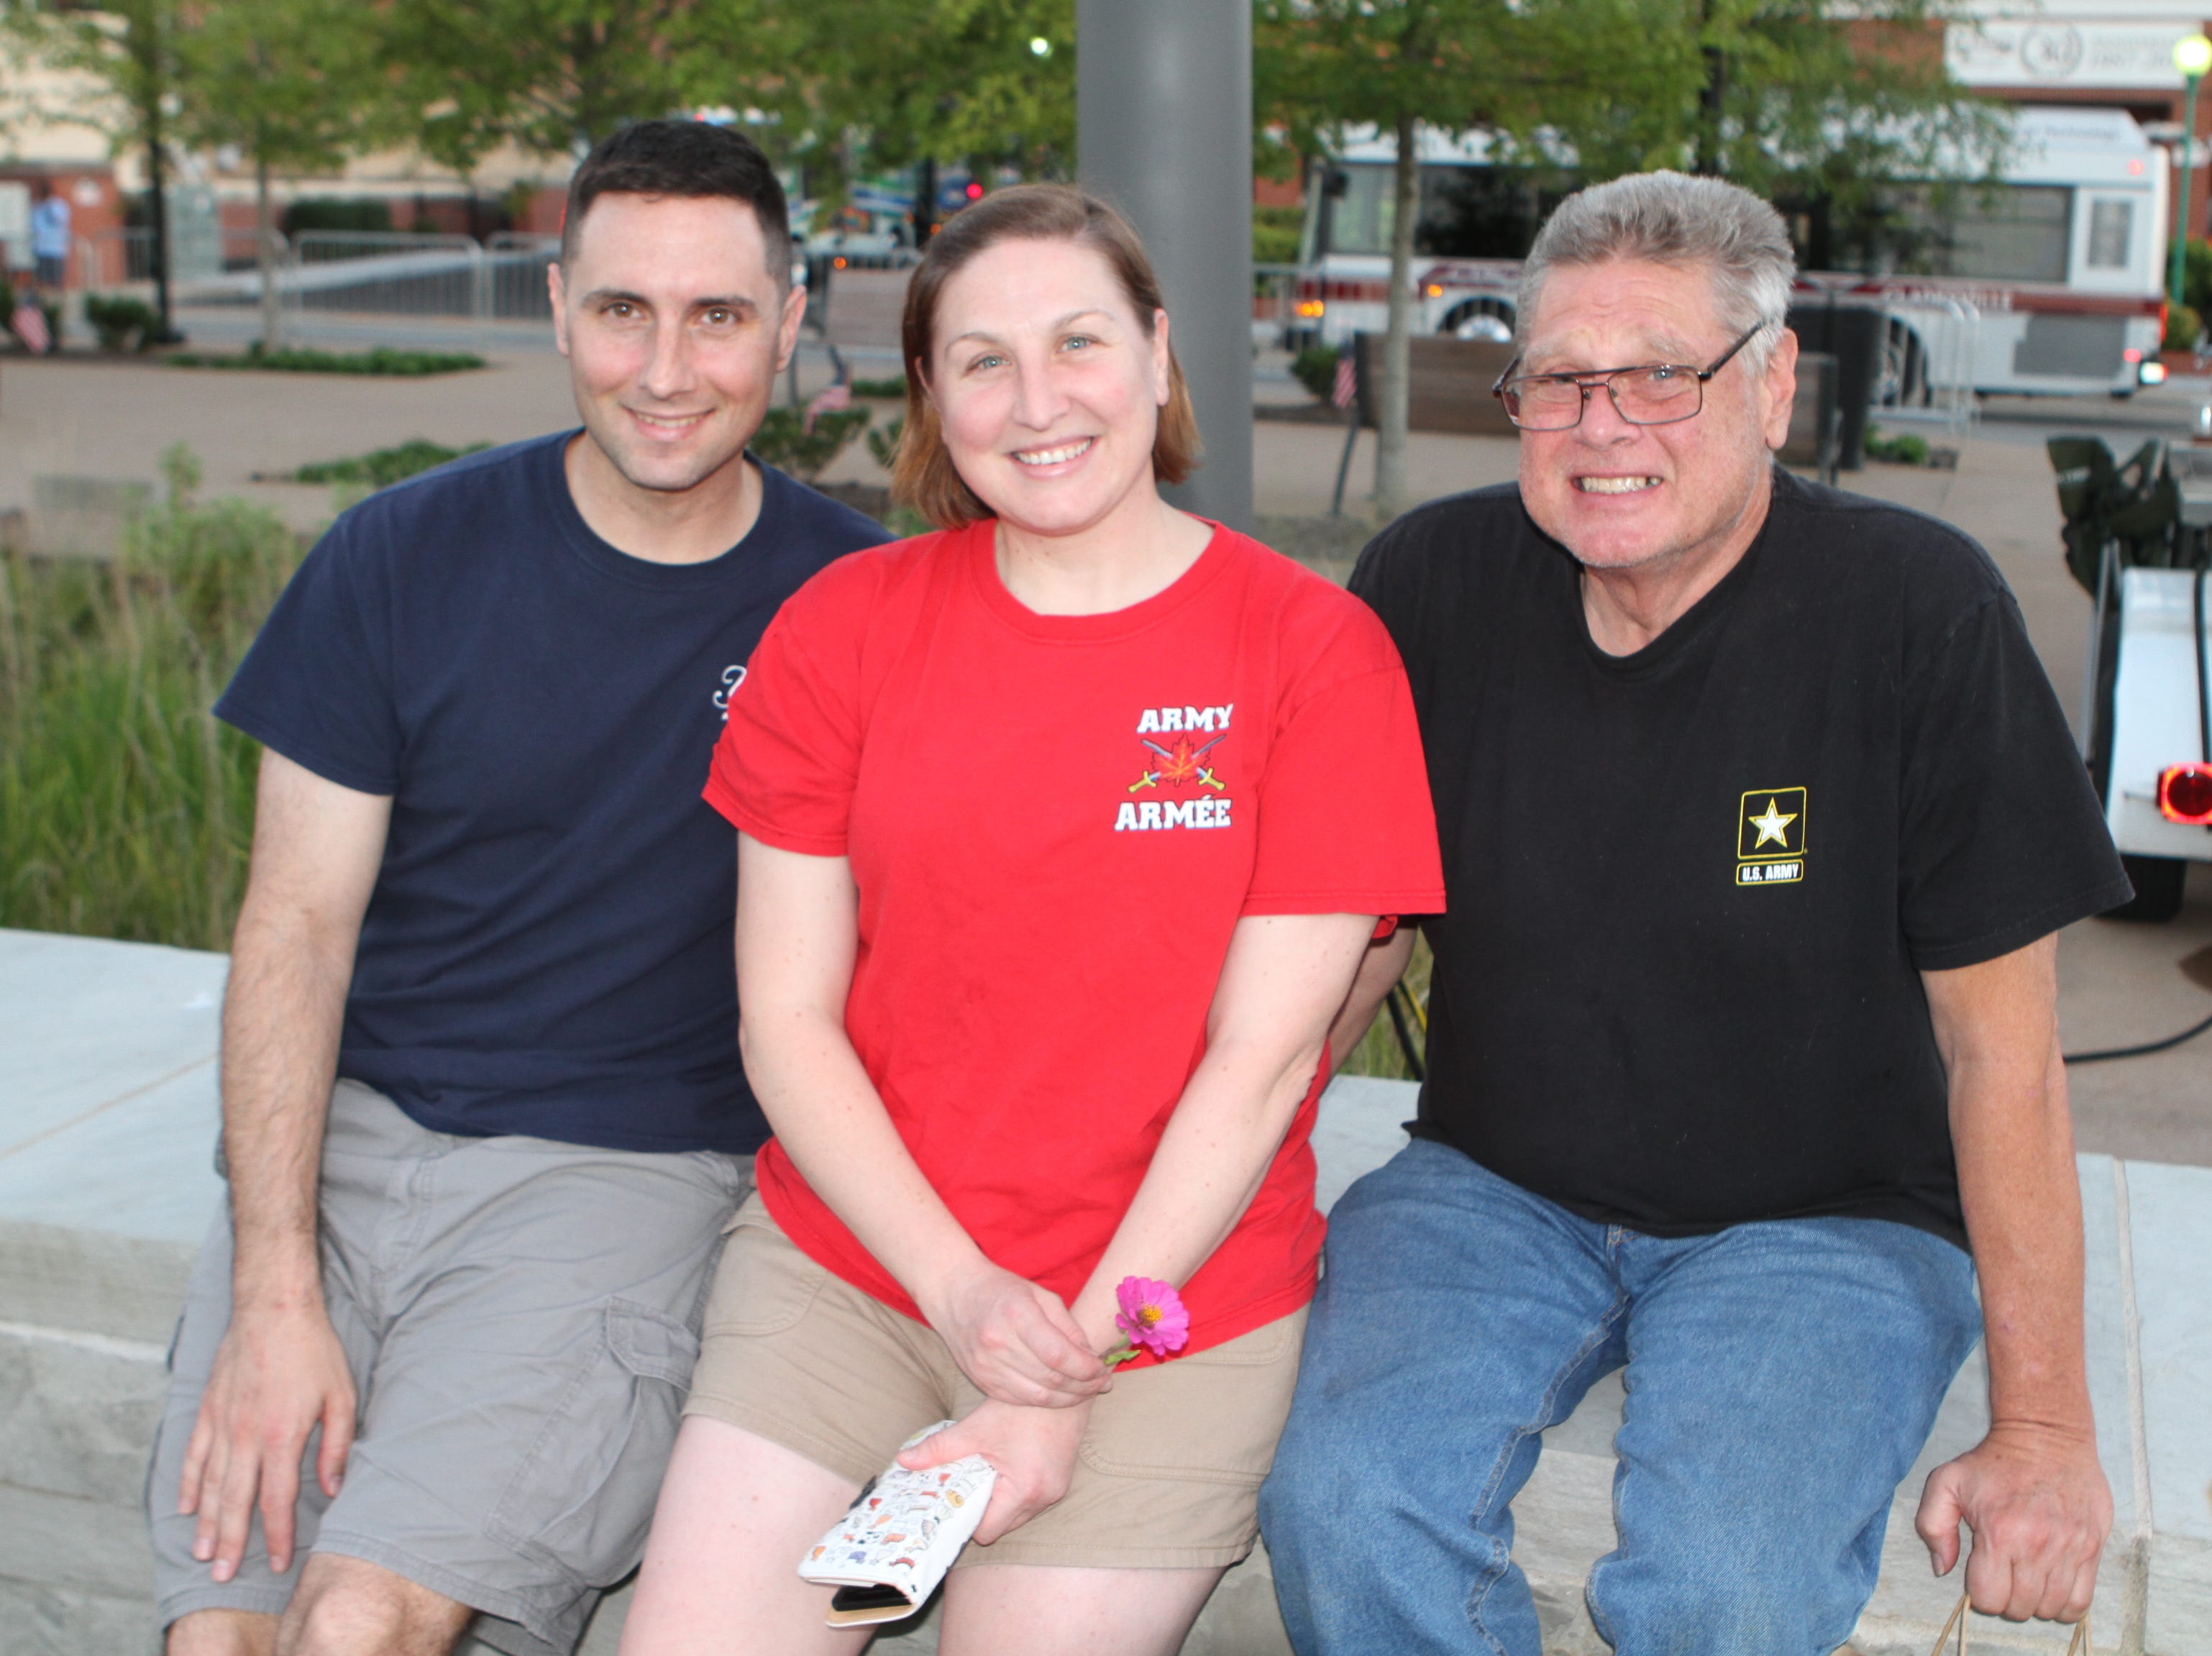 Gerard Cortese and Katherine and Stephen Bolcar at the Downtown at Sundown Welcome Home Veterans Concert featuring American Floyd, Friday, Sept. 14, 2018.